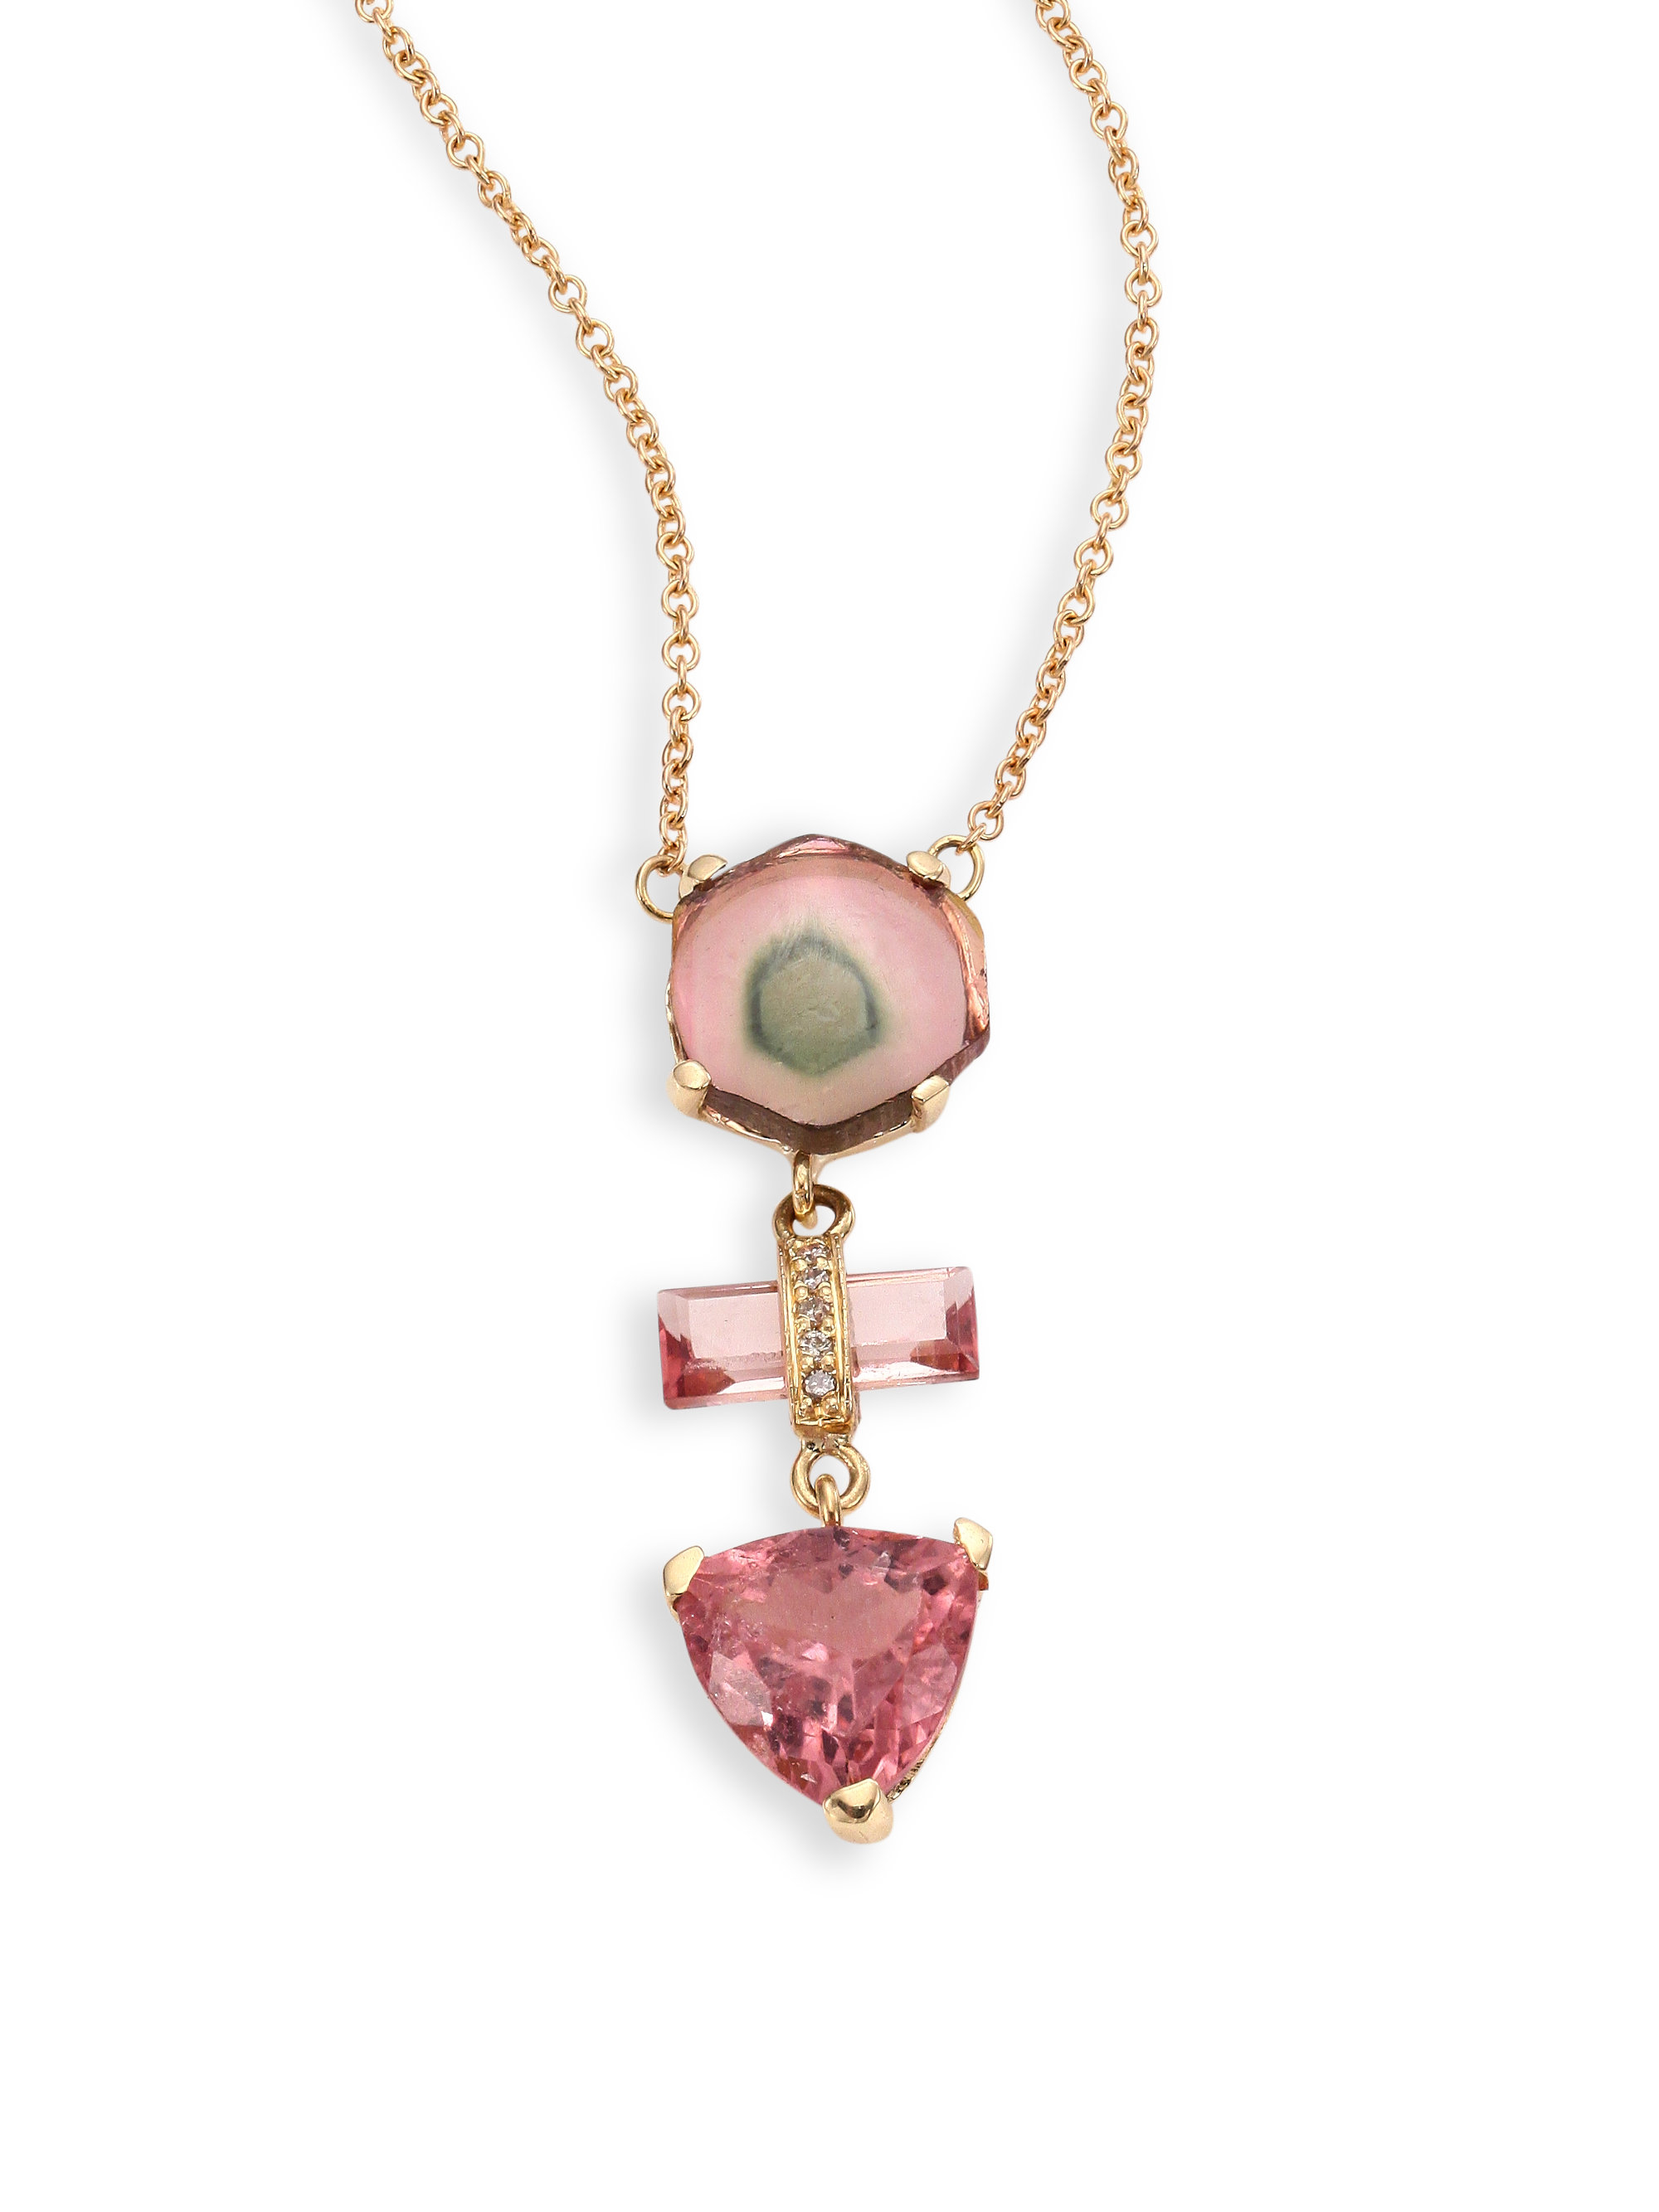 jacquie aiche 14k yellow gold pink tourmaline necklace in. Black Bedroom Furniture Sets. Home Design Ideas